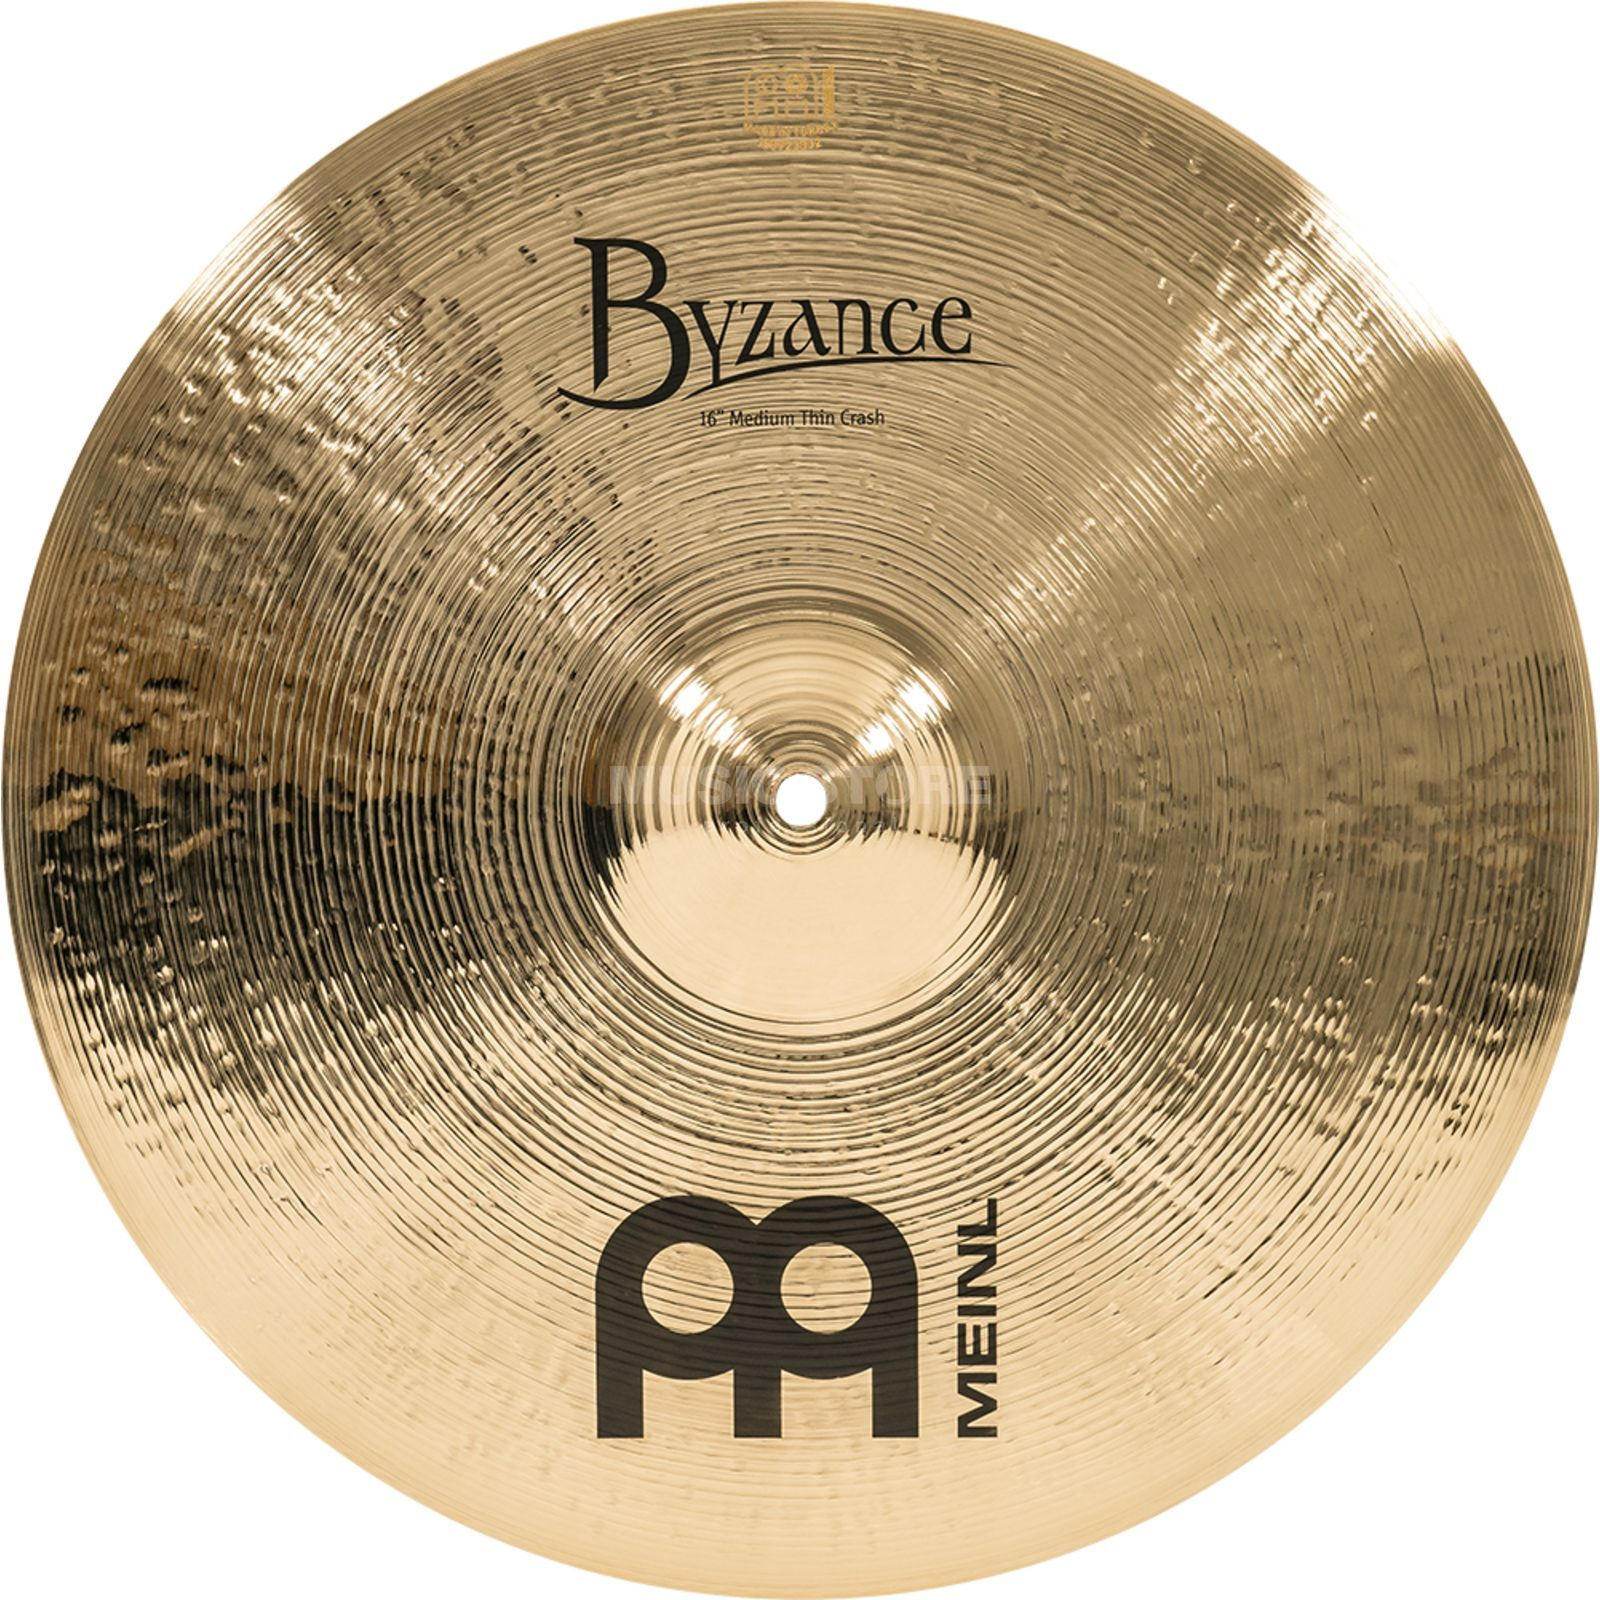 "Meinl Byzance Medium Thin Crash 16"" B16MTC-B, Brilliant Zdjęcie produktu"